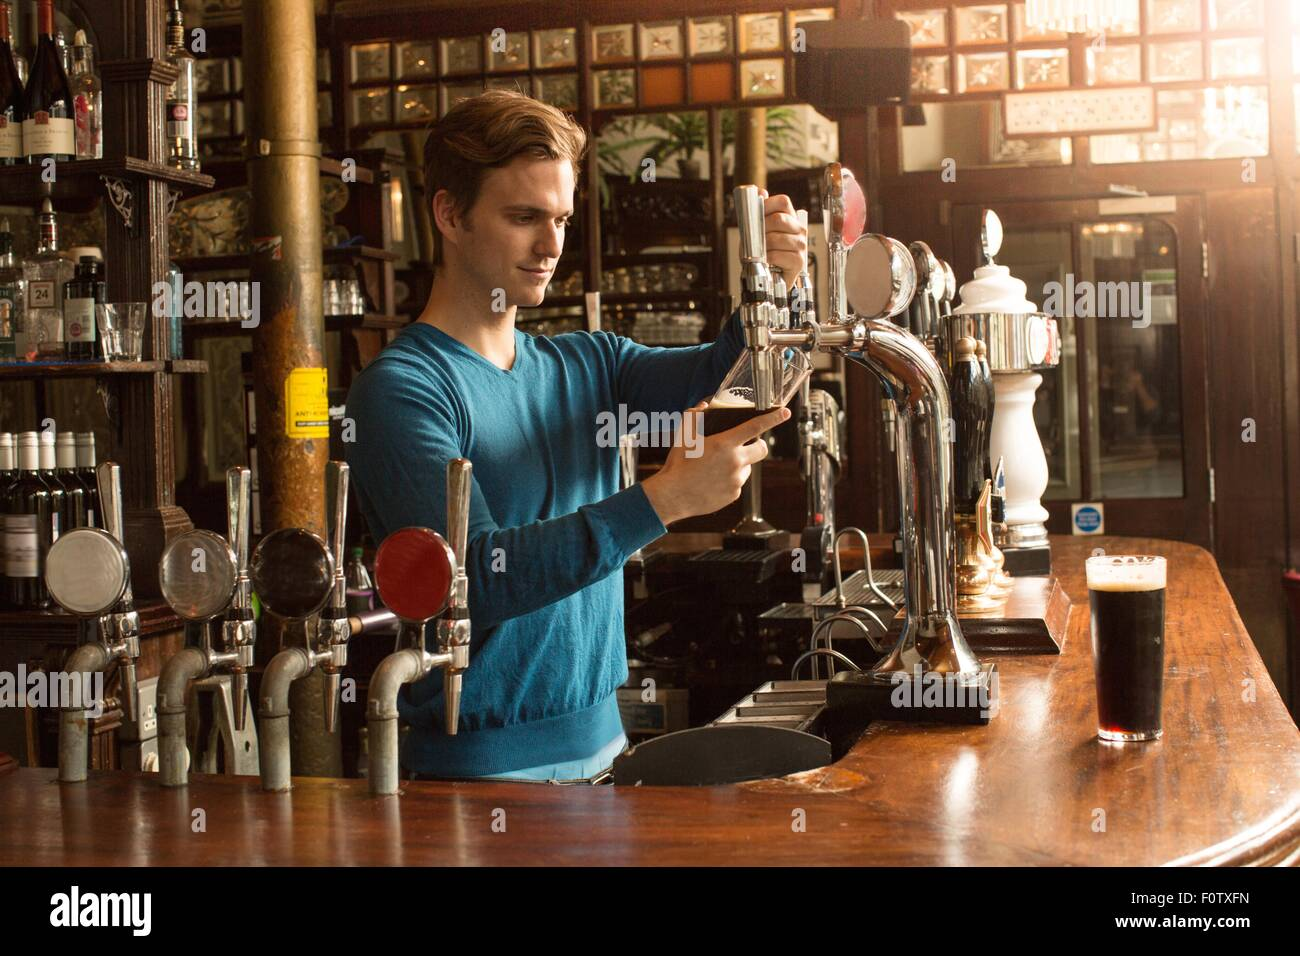 Young man working in public house, serving drinks - Stock Image